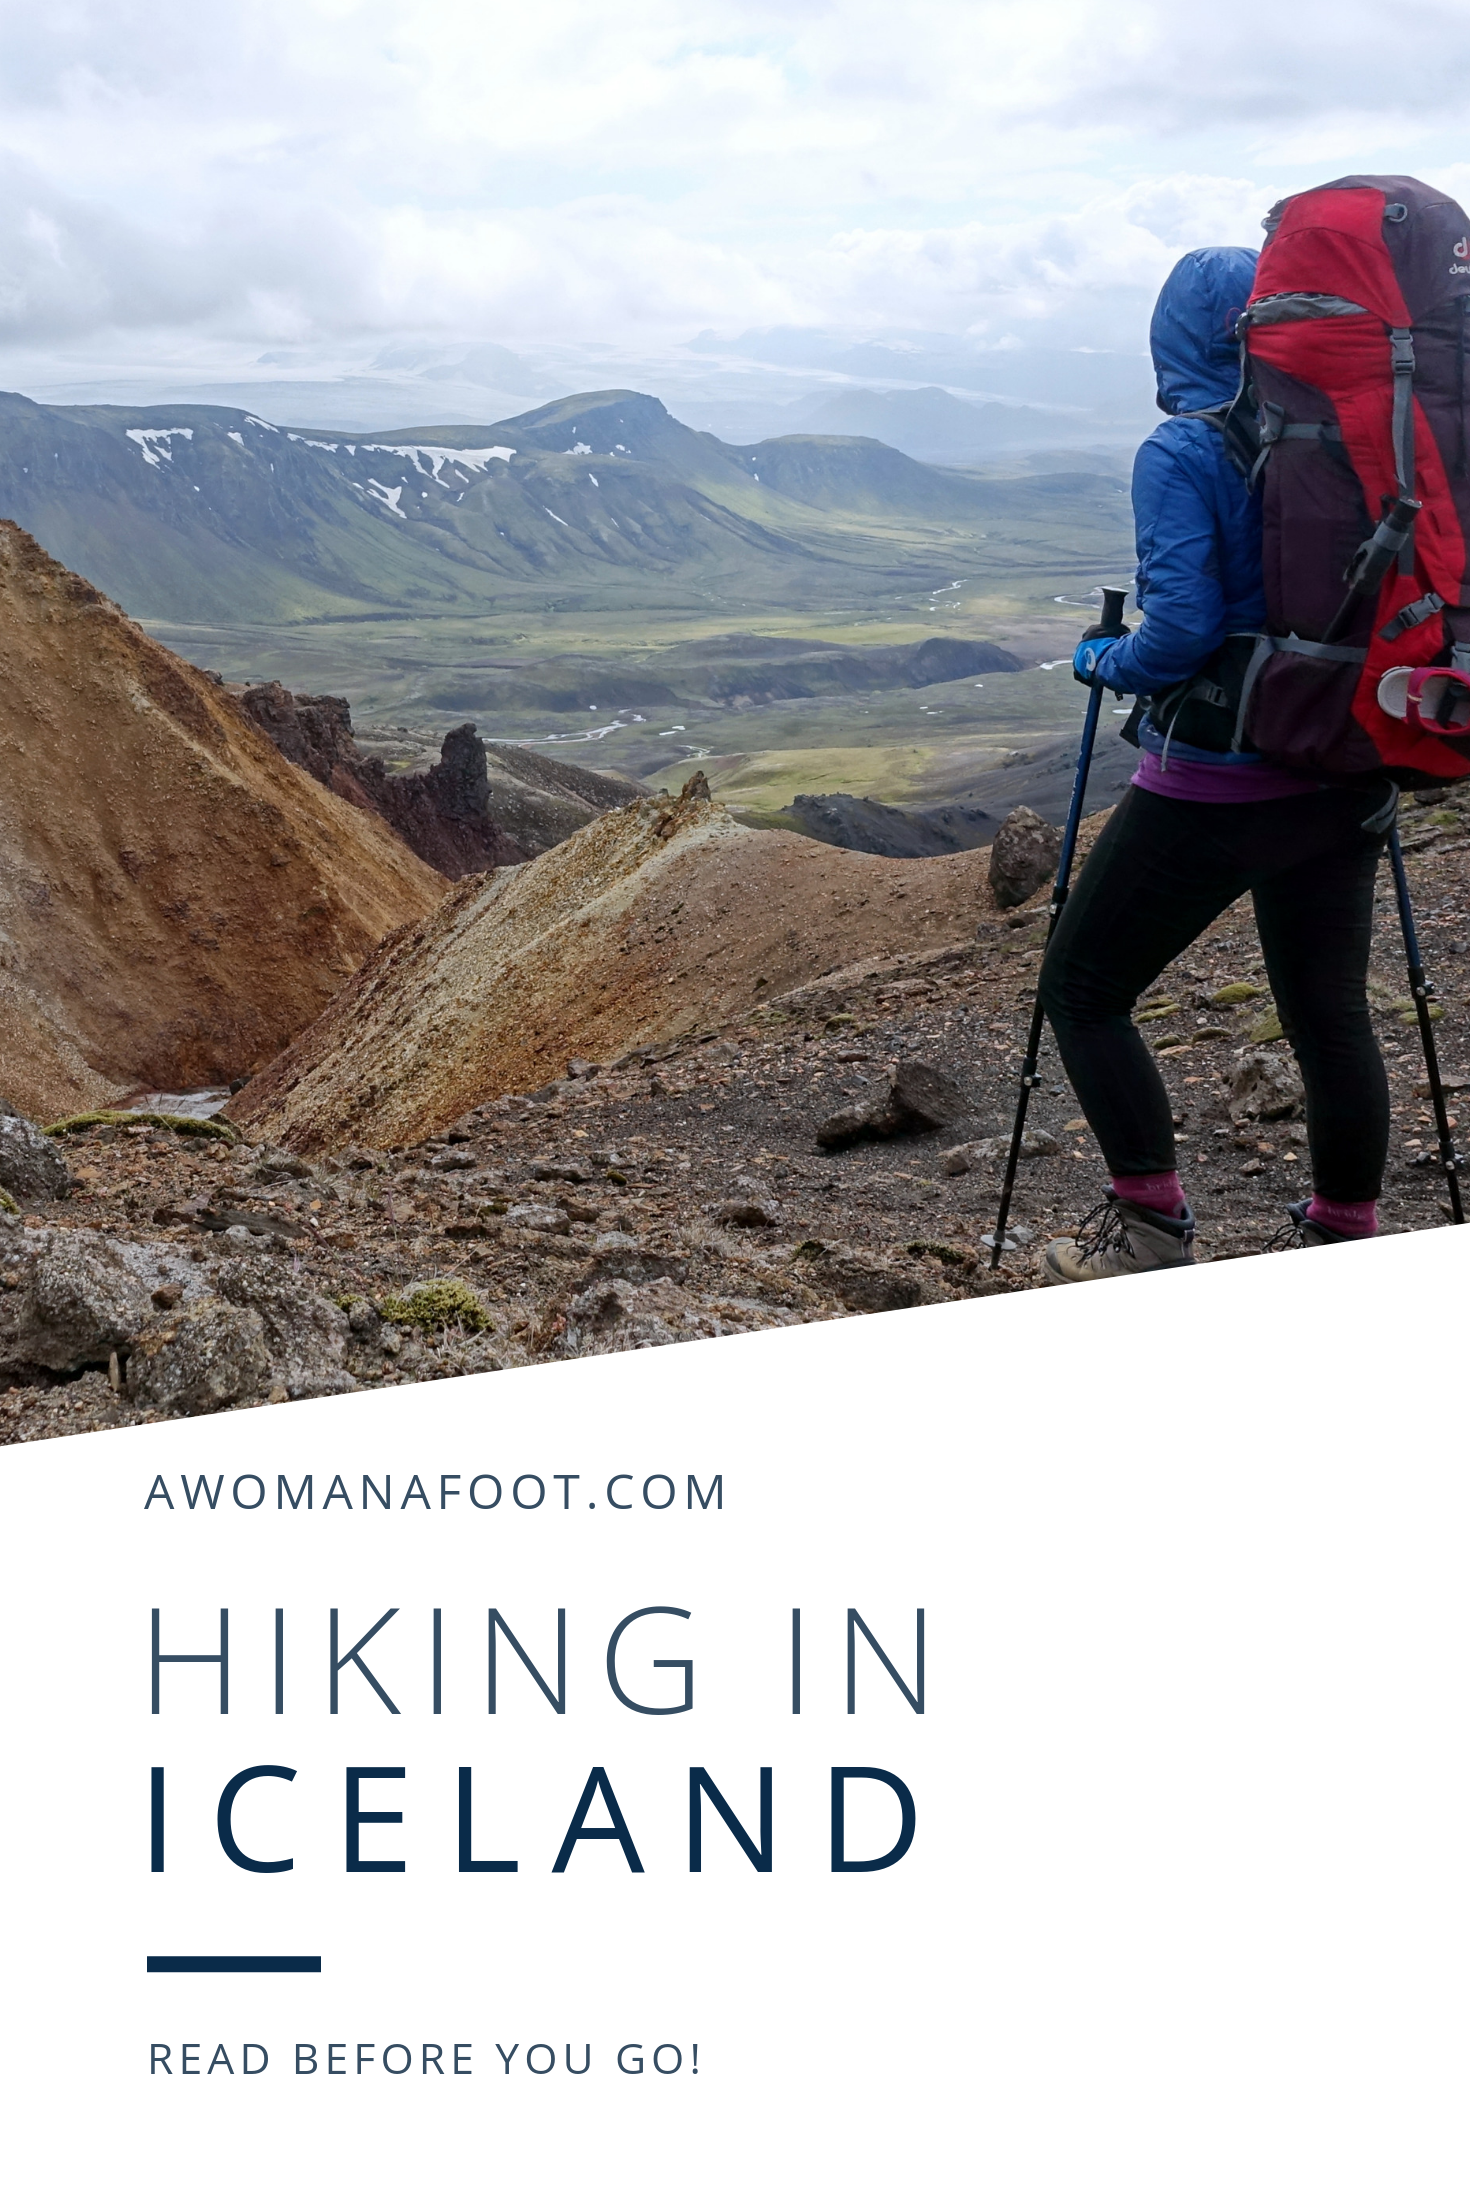 Iceland is an awesome destination for hiking & camping solo! Learn all you need to know to have the adventure of your life in the Land of Fire and Ice! Read this collection of useful tips and advice on hiking in Iceland for a safe and enjoyable trek @ Awomanafoot.com |#Iceland | #trails | #hiking | #HikingIceland | All you need to know before hiking in Iceland | Female solo hiking in Iceland | Guide to hiking in Iceland | What you need to know before hiking in Iceland |